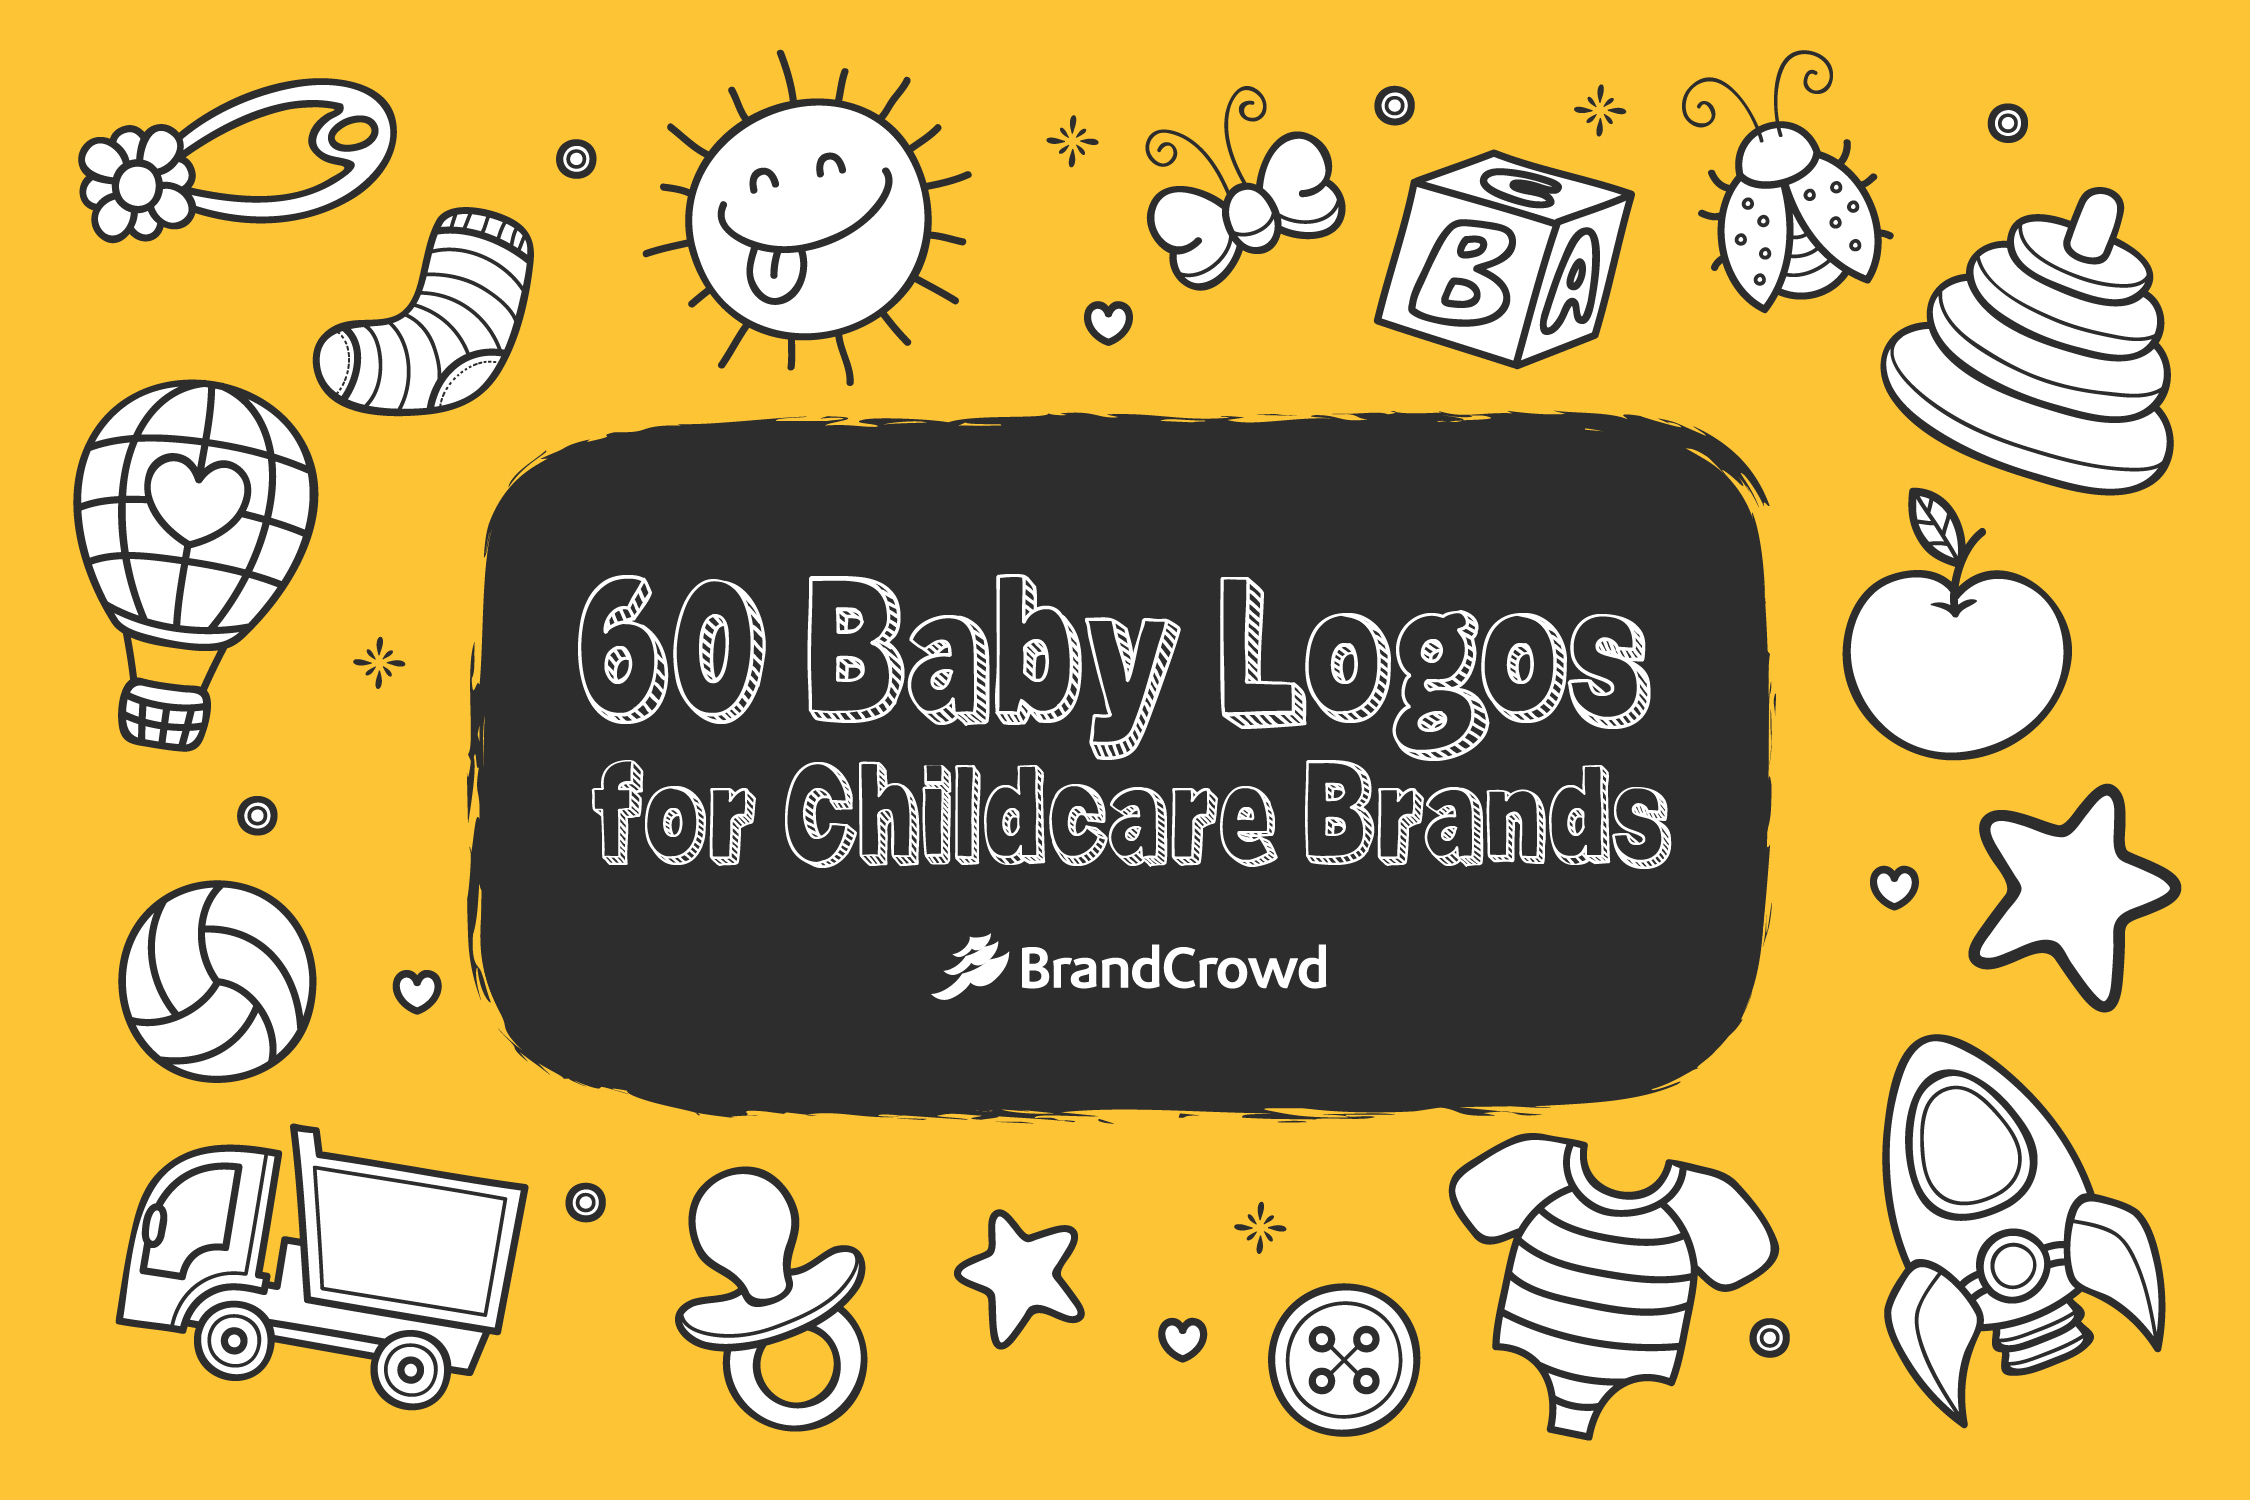 the-header-design-contains-drawings-of-baby-related-symbols-like-onesies-socks-pcifiers-and-more-the-blog-title-typography-is-in-the-center-of-the-image